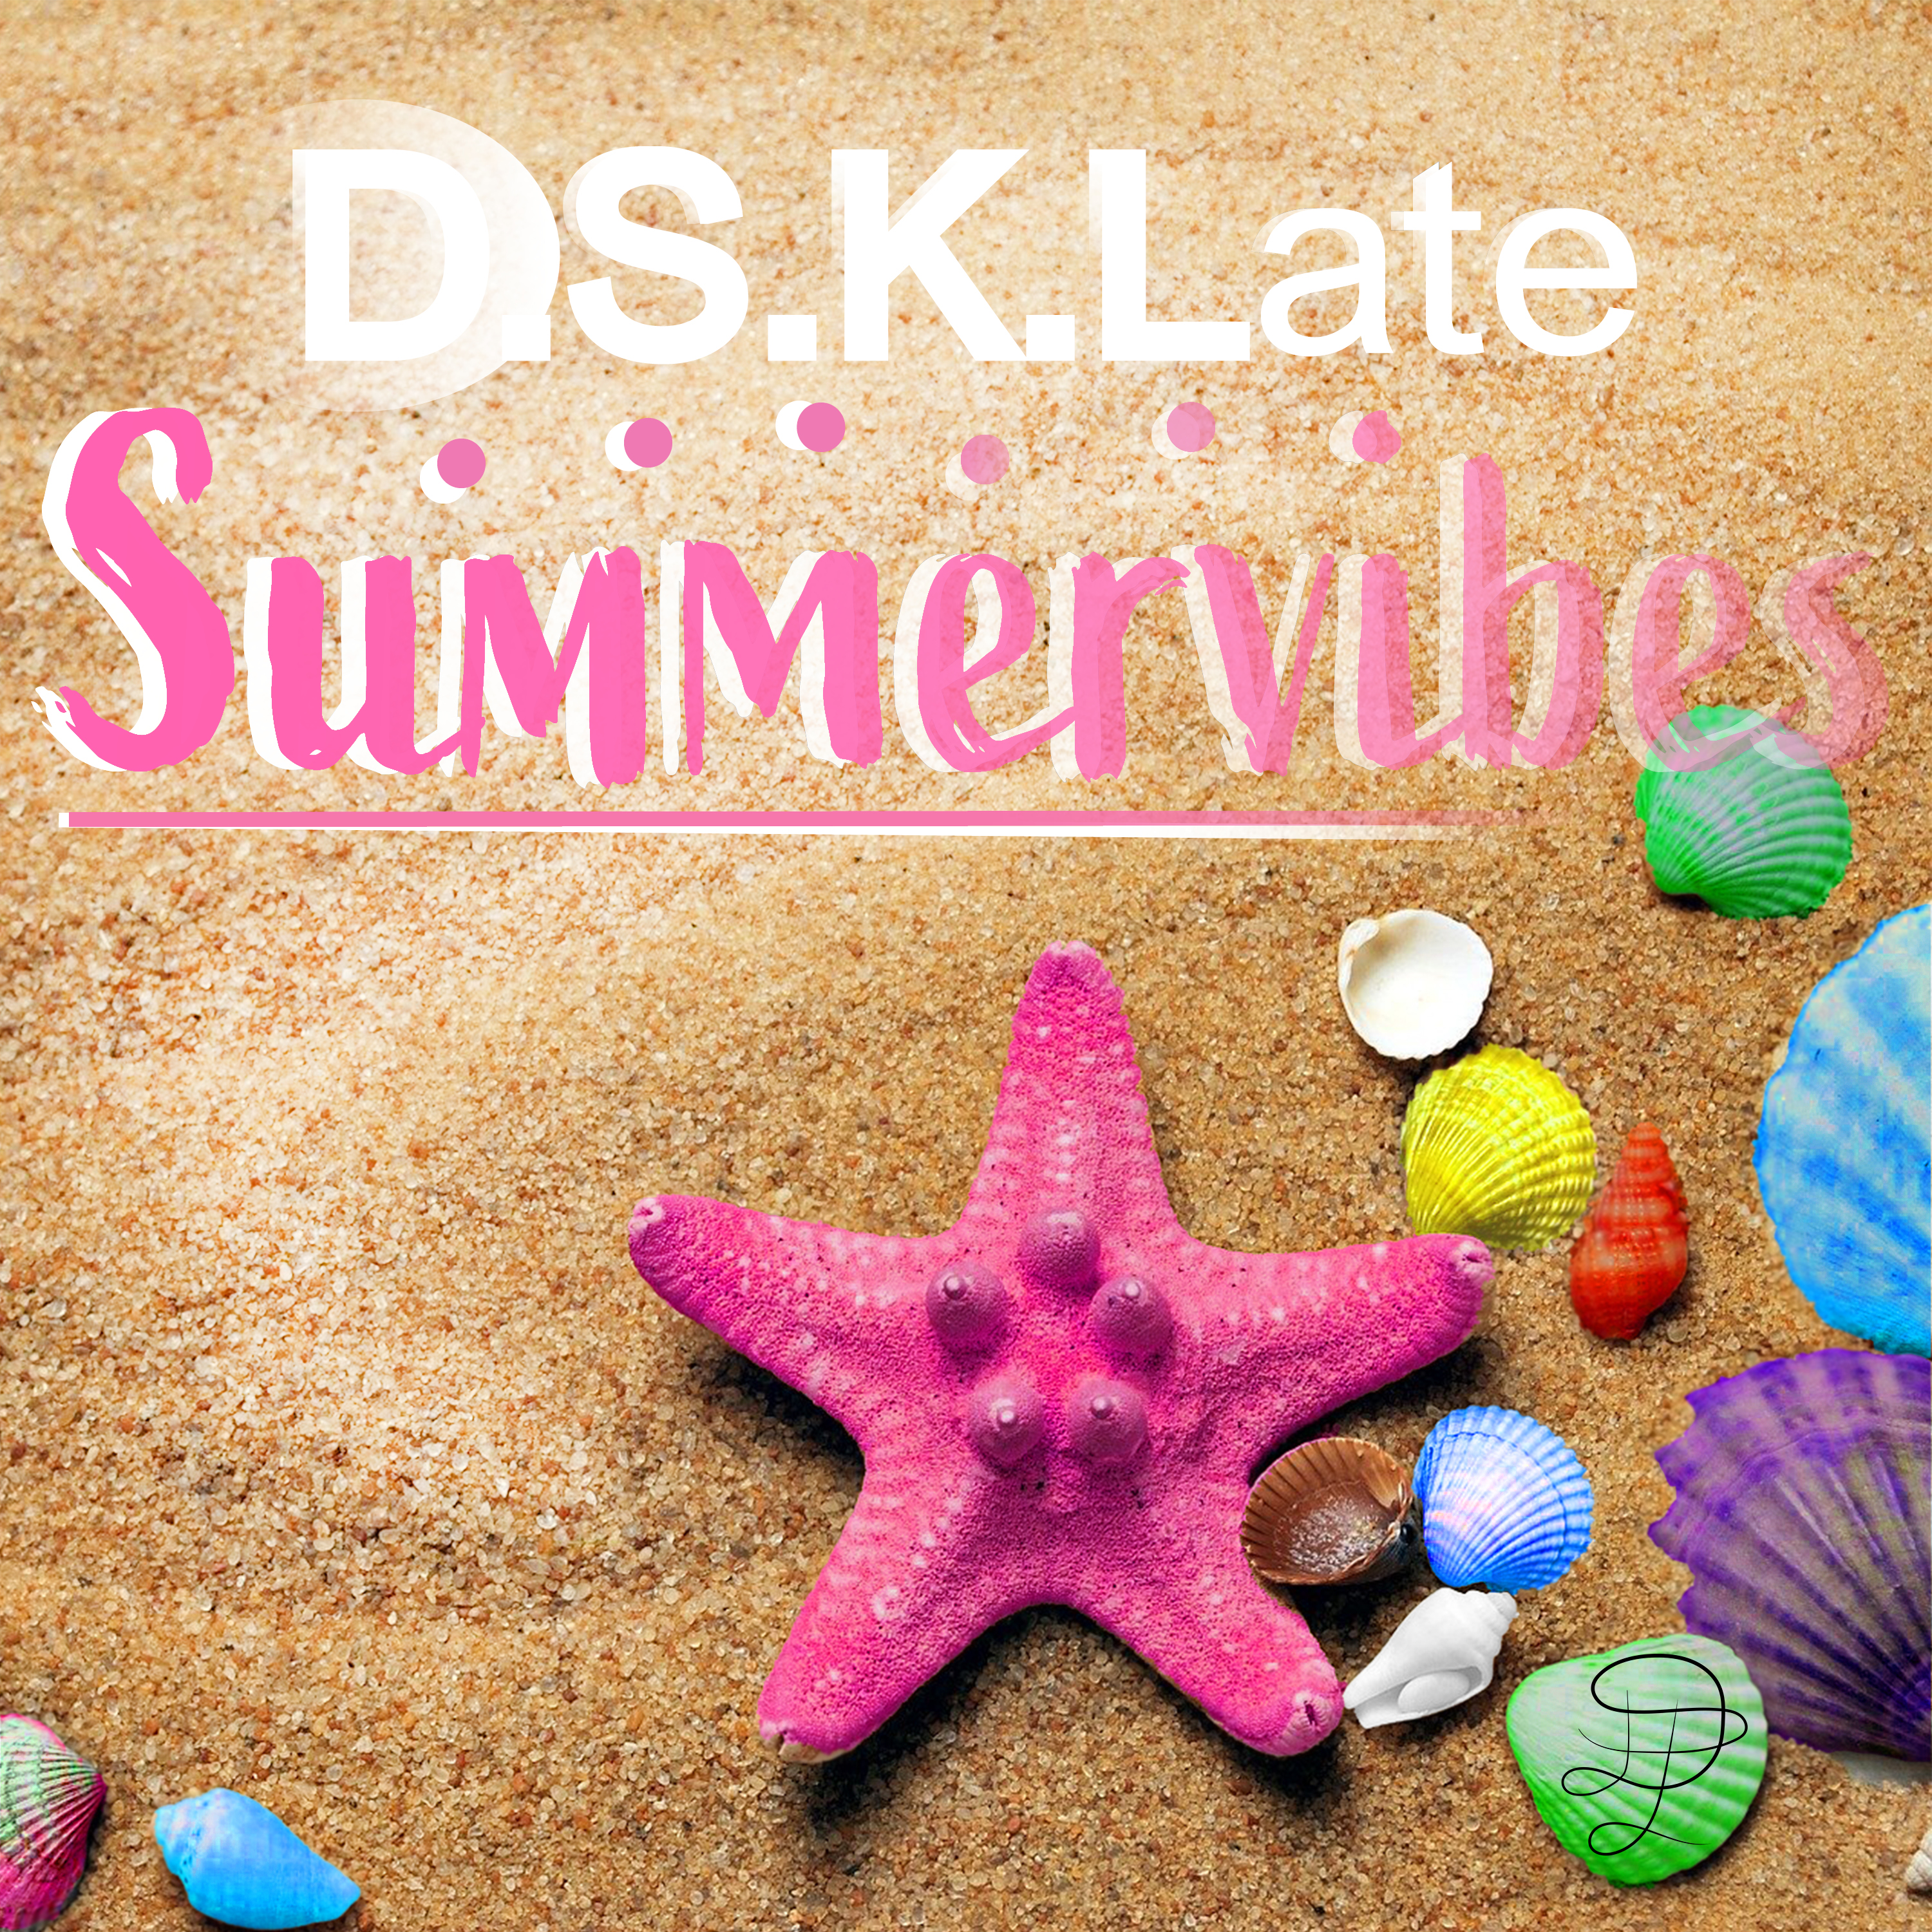 D.S.K.LATE Summervibes - Cover